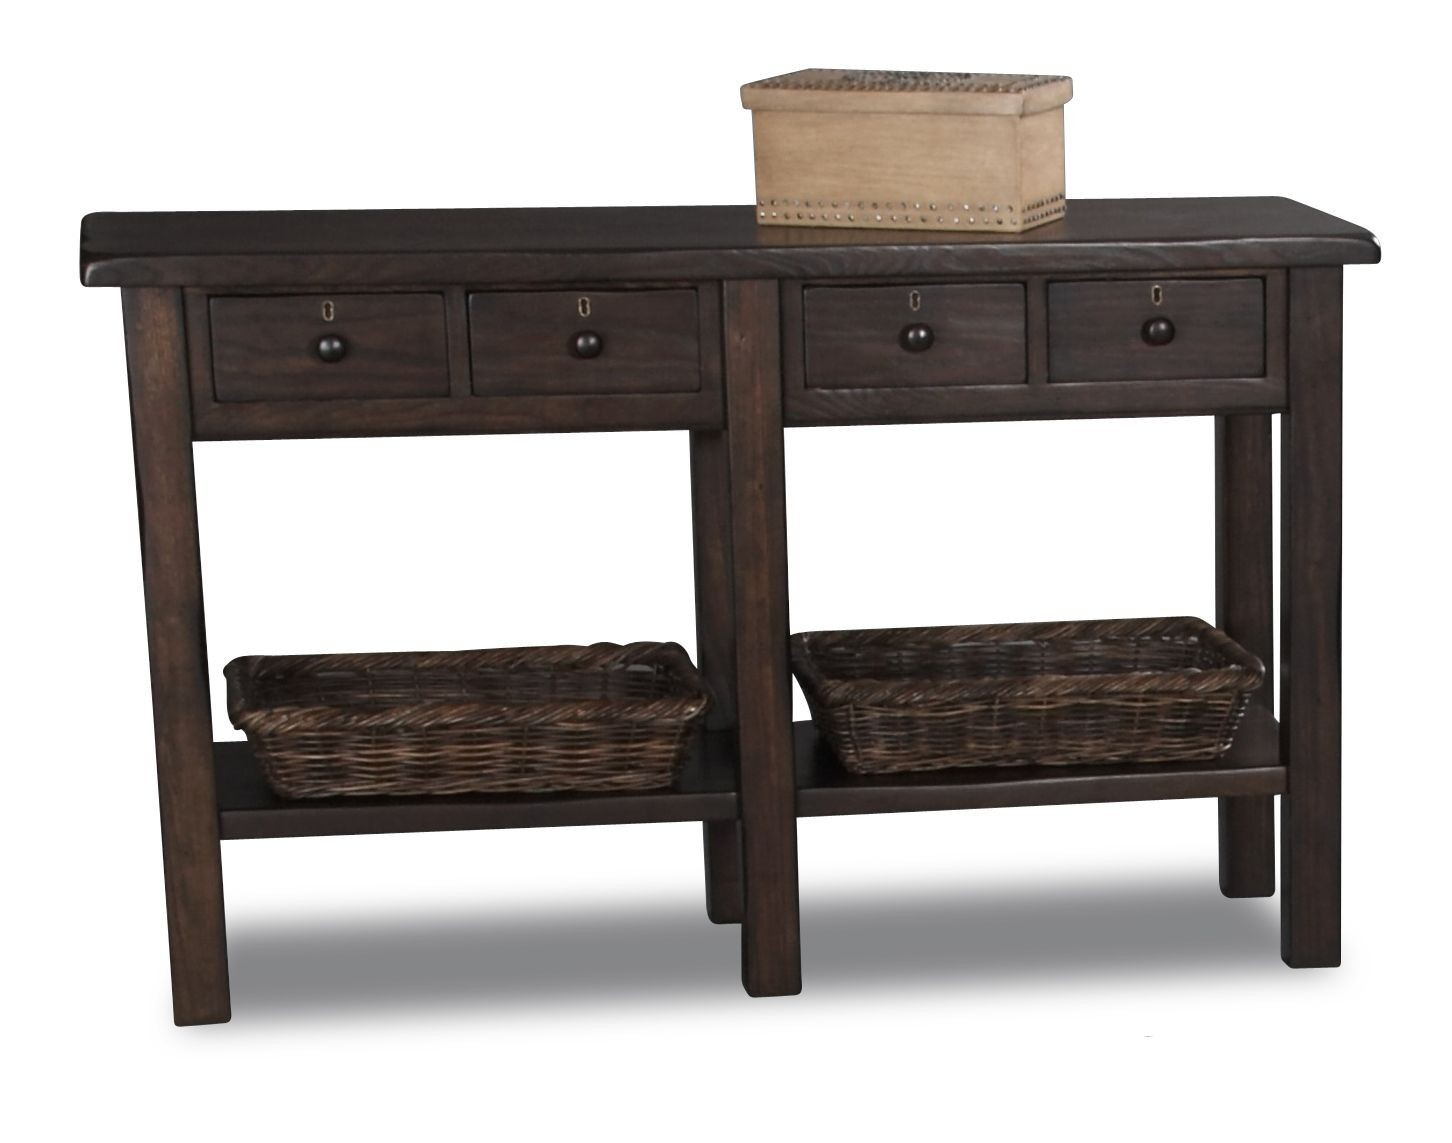 Providence Sofa Table From Klaussner 806 825stbl Coleman Furniture